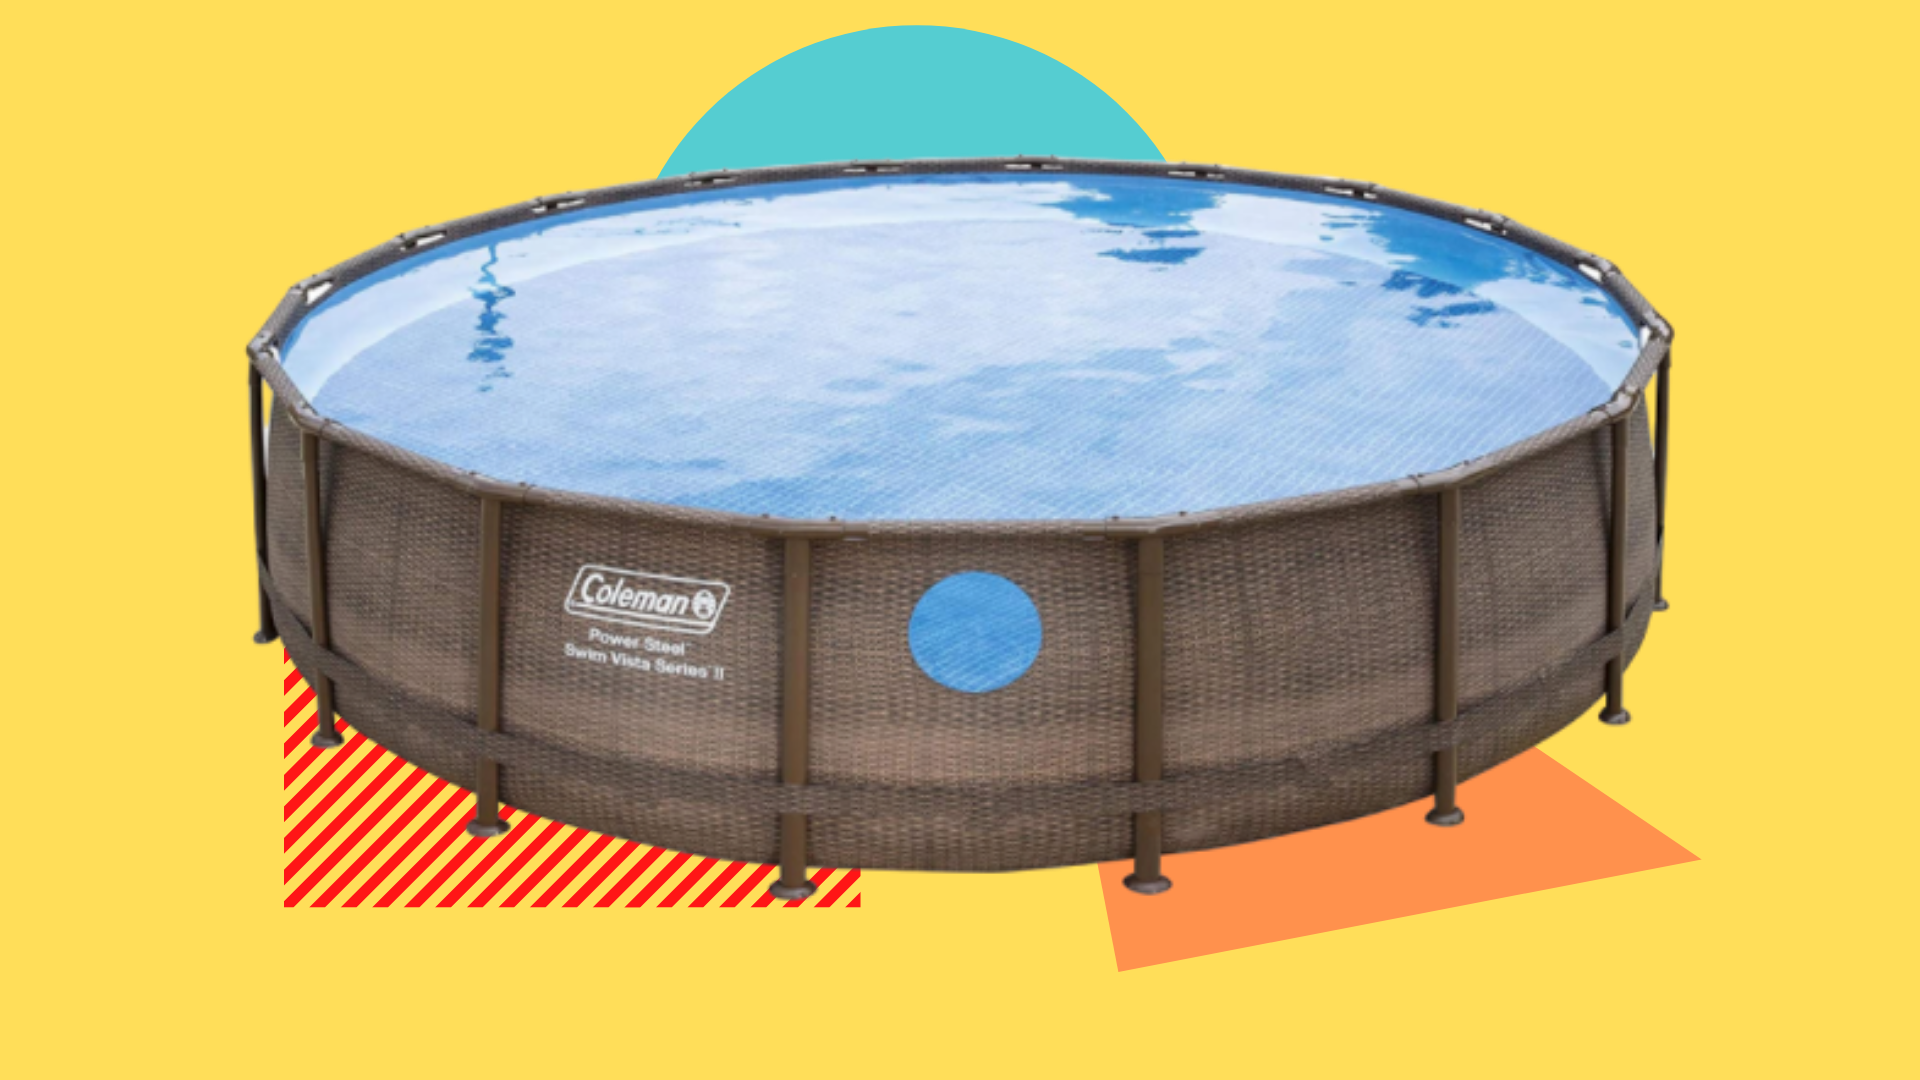 Best Above Ground Pools For Building A Backyard Oasis In 30 Minutes